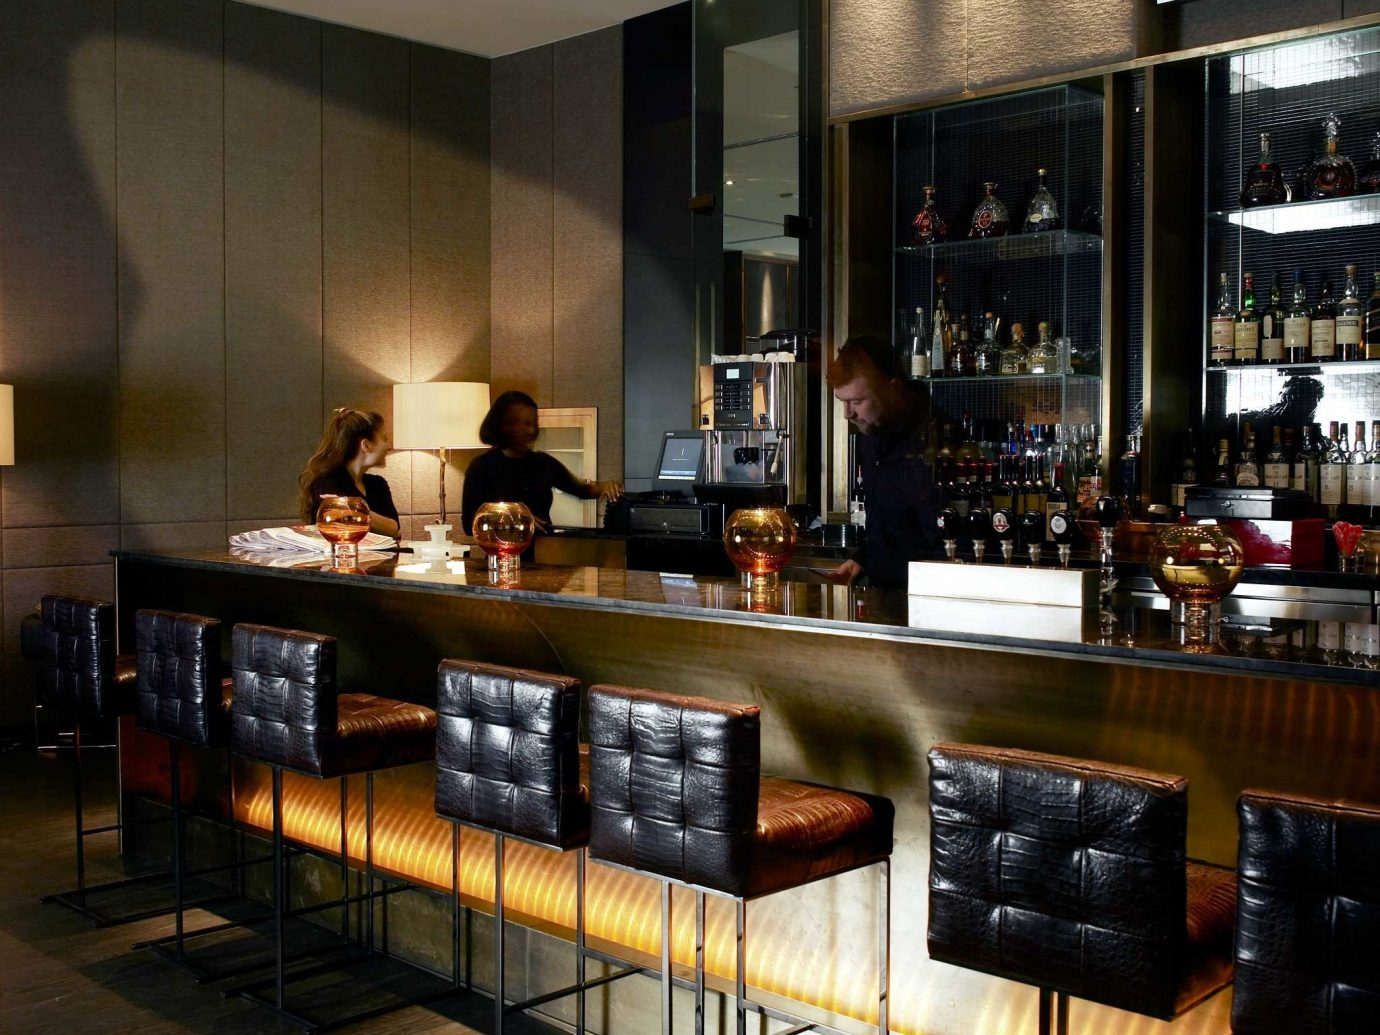 Bar Canada Drink Hotels Luxury Toronto indoor restaurant interior design café meal several